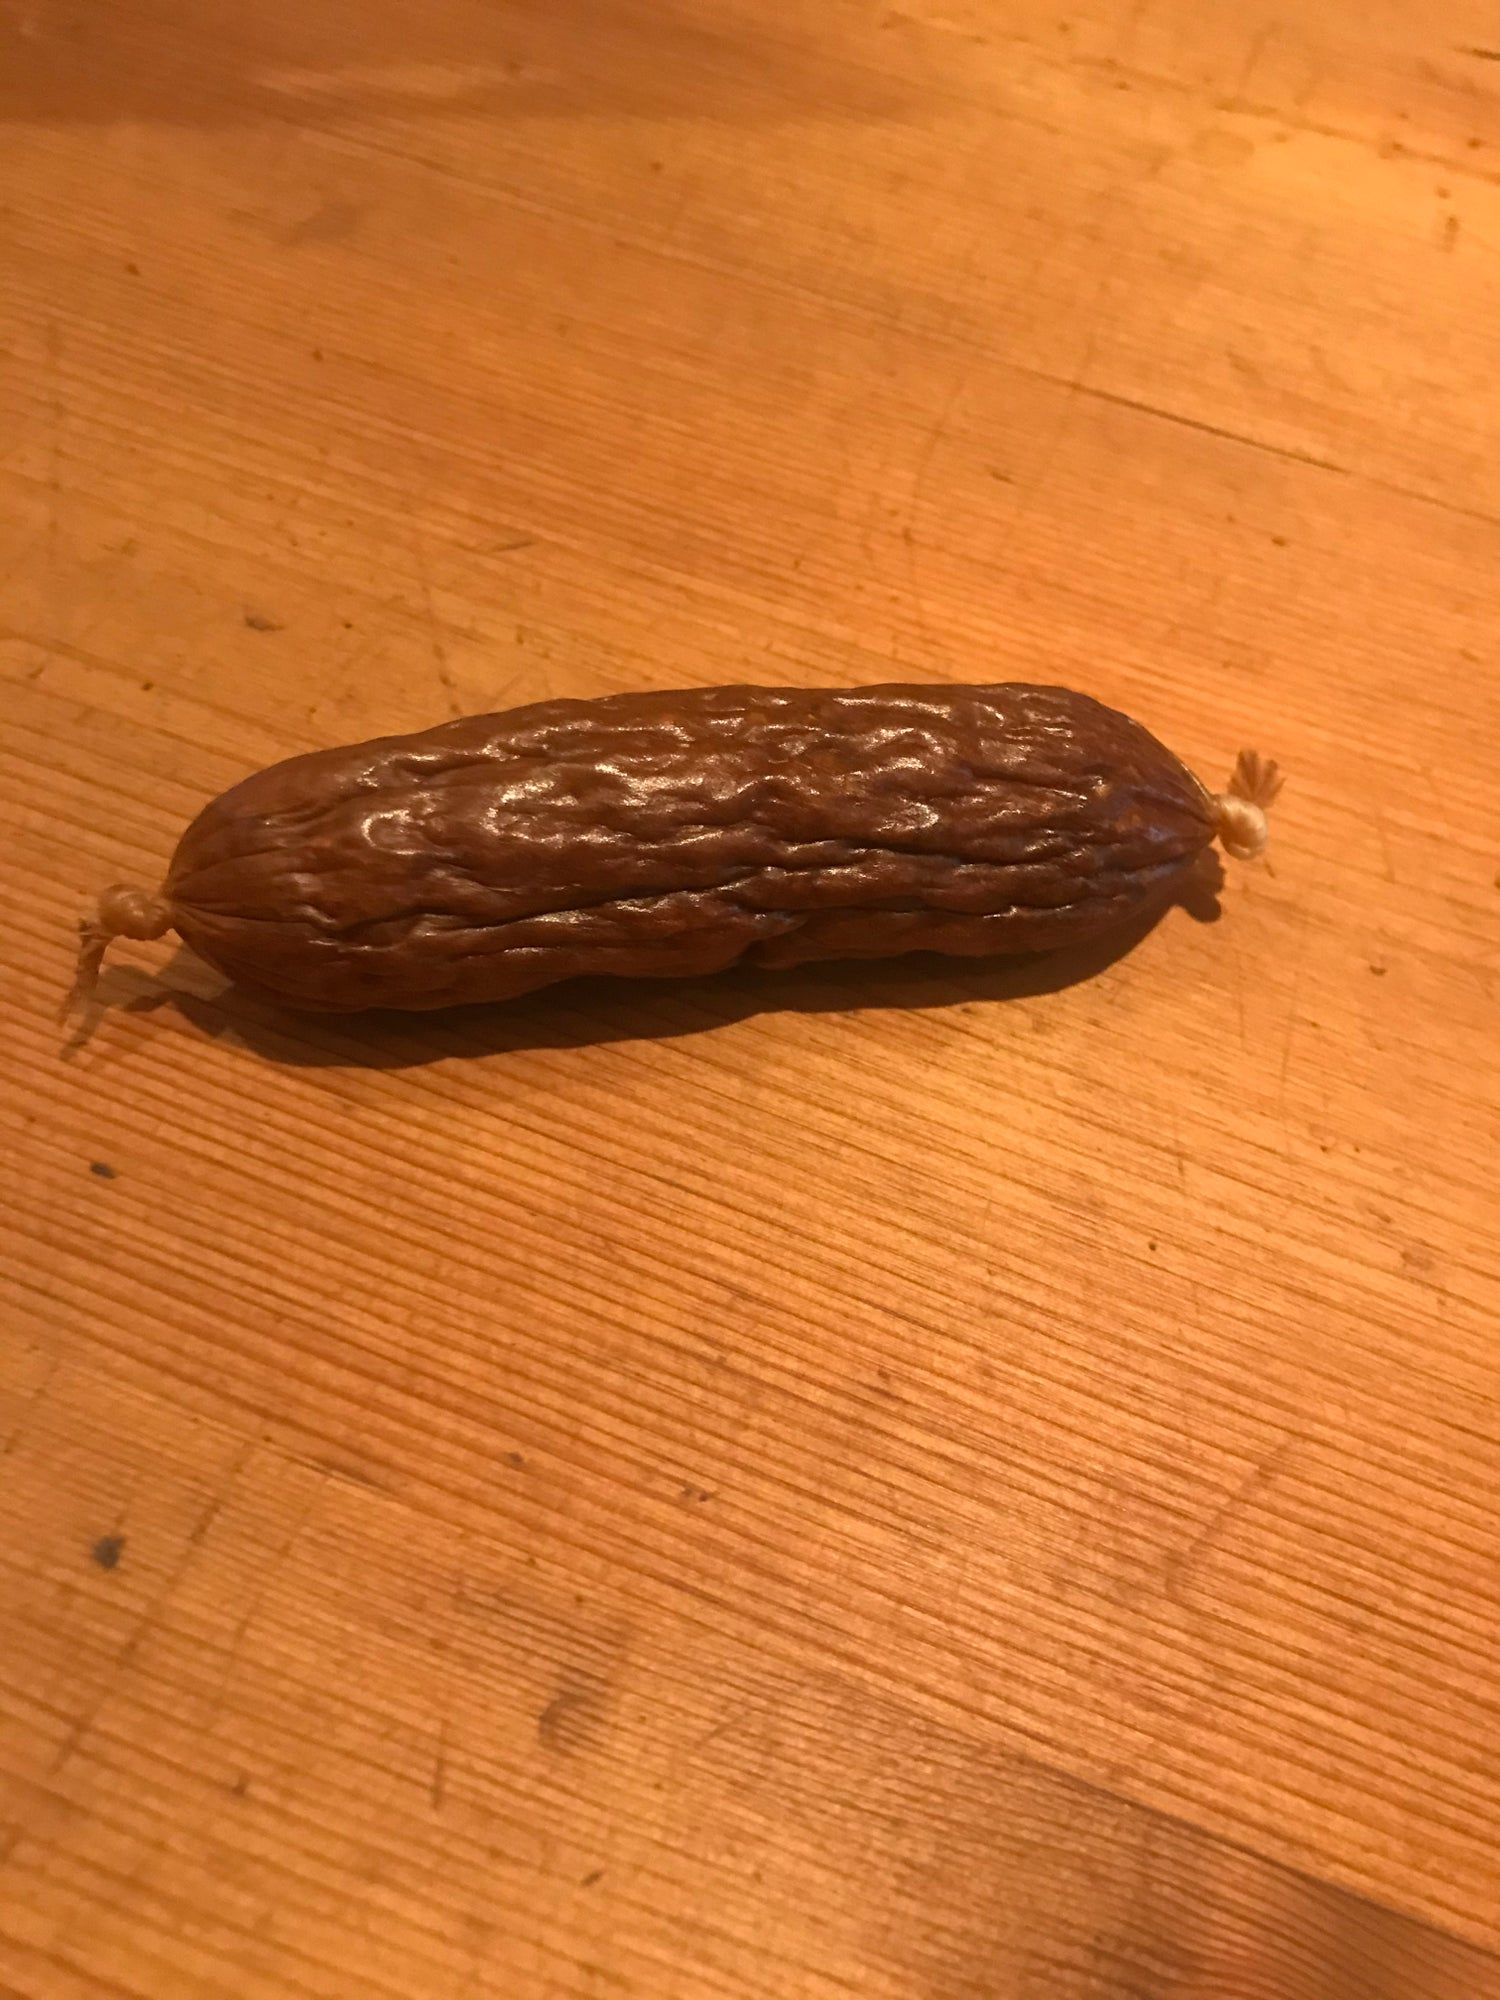 Image of Hollings Liver Sausage